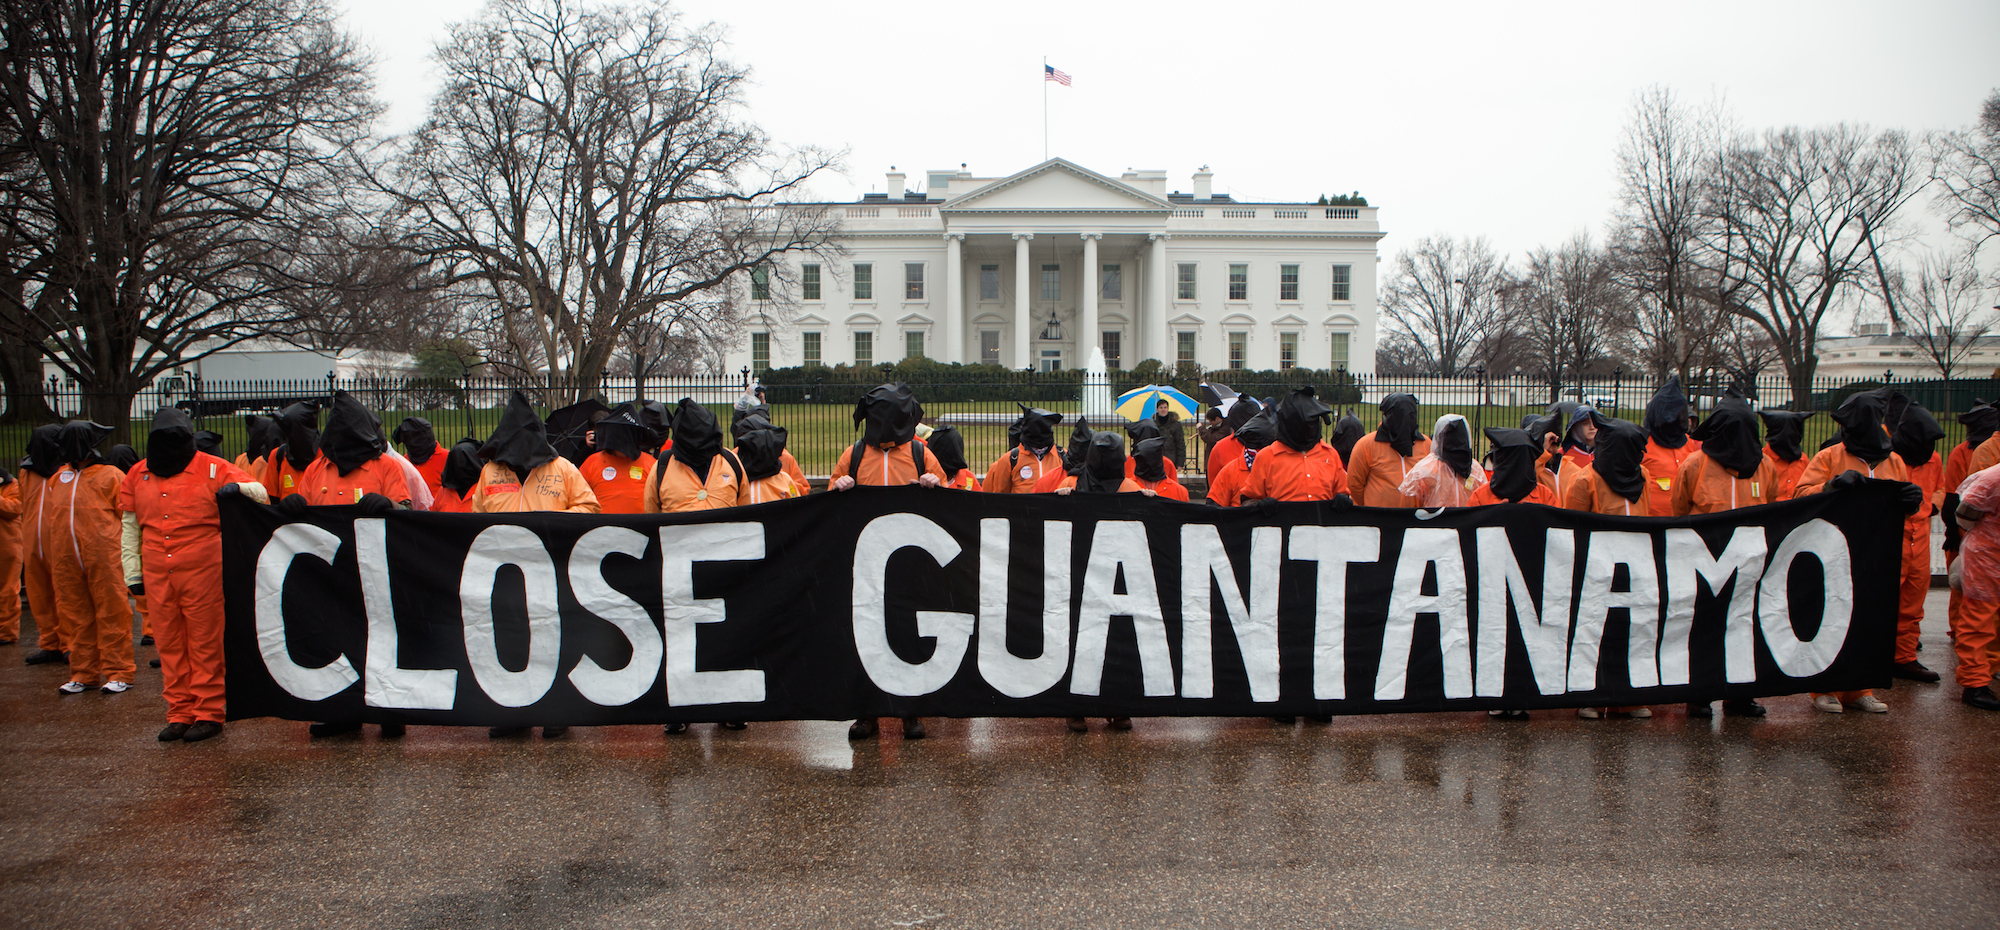 10 years of Guantanamo - Close Guantanamo Now